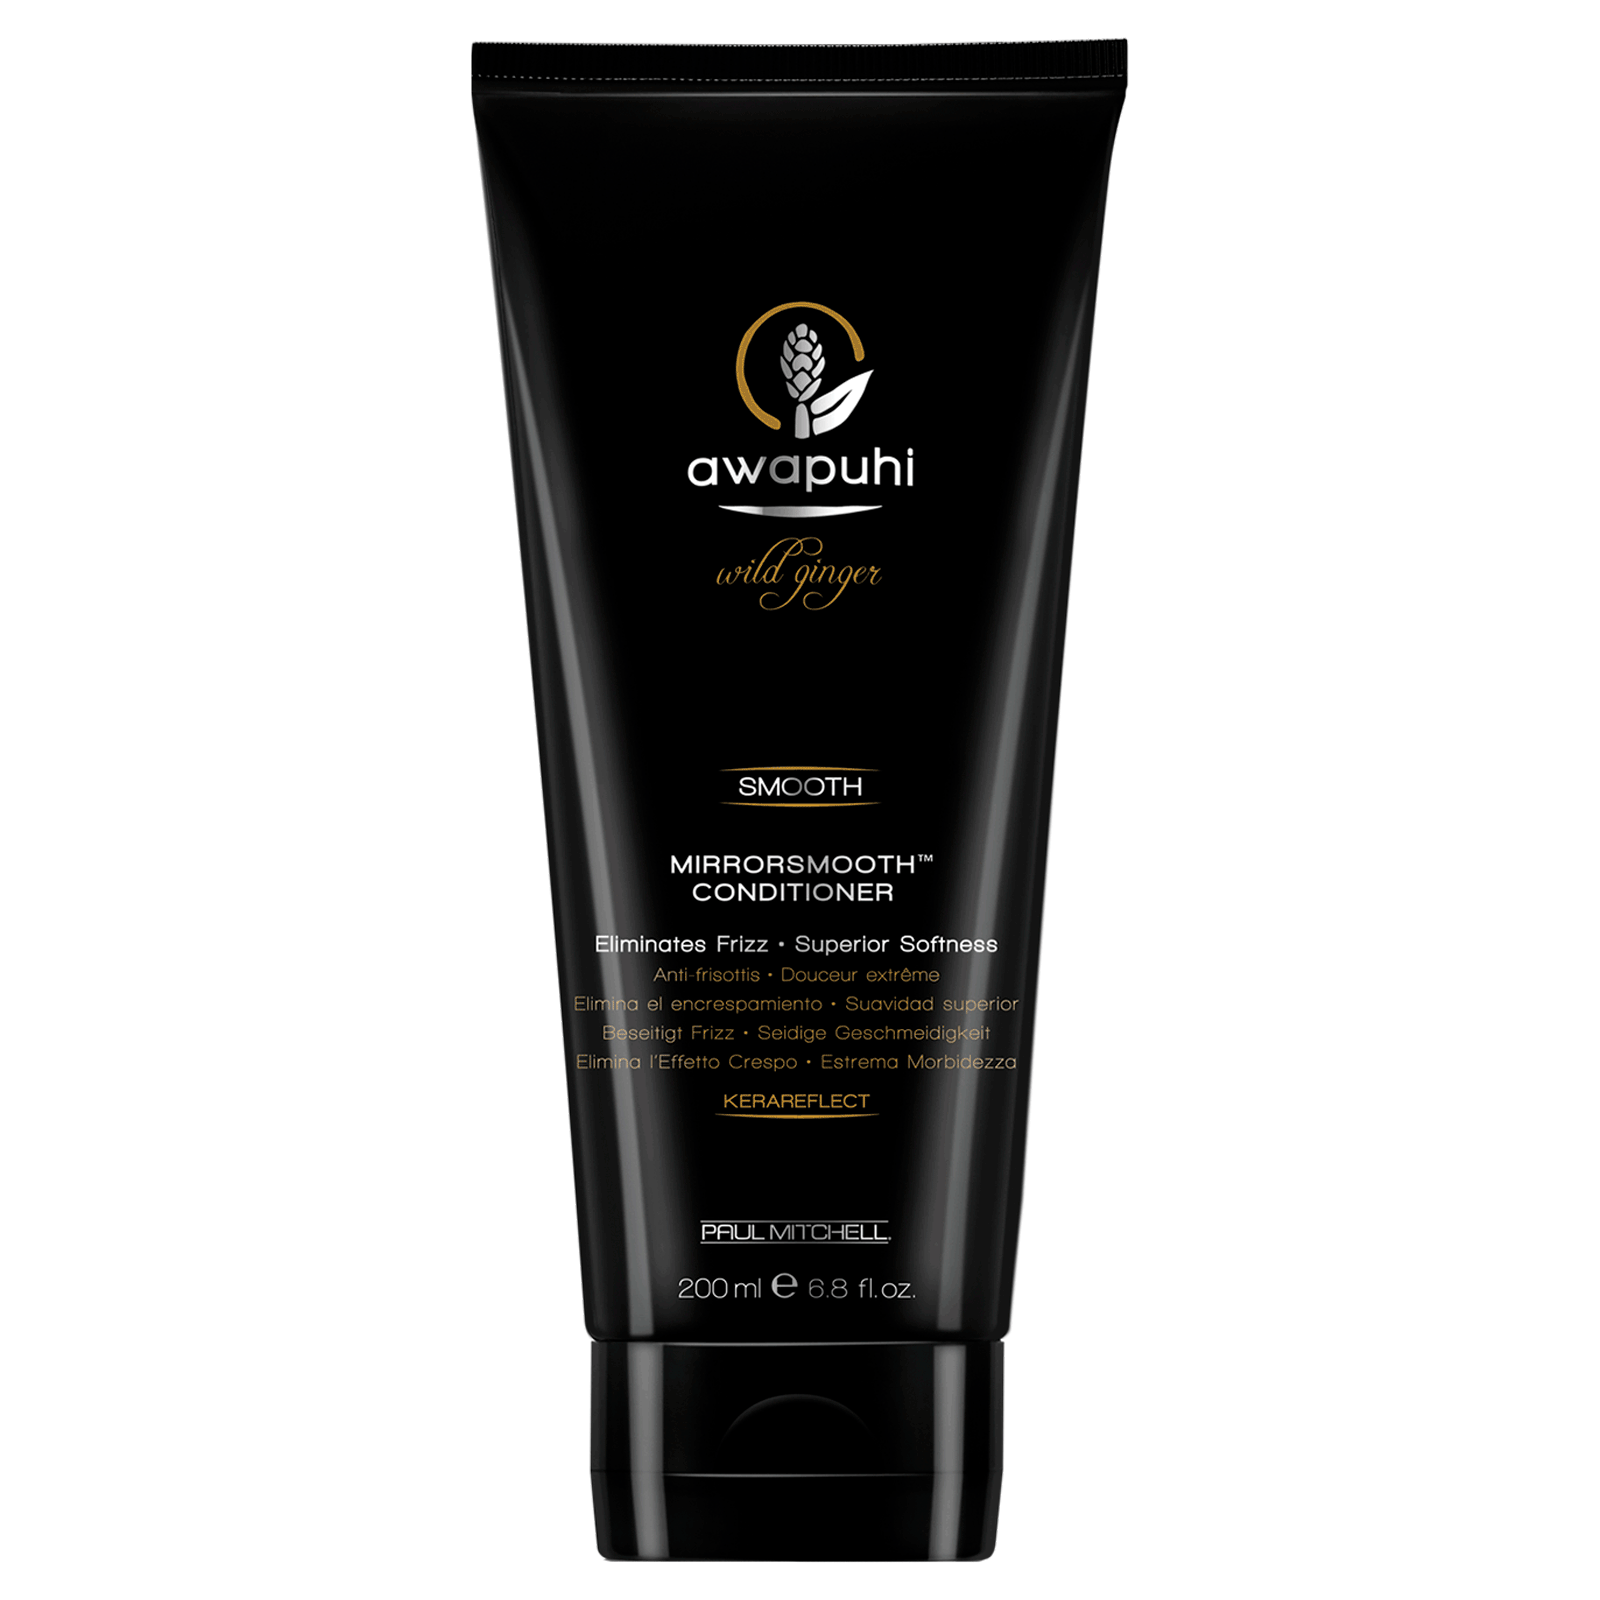 MirrorSmooth™ Conditioner